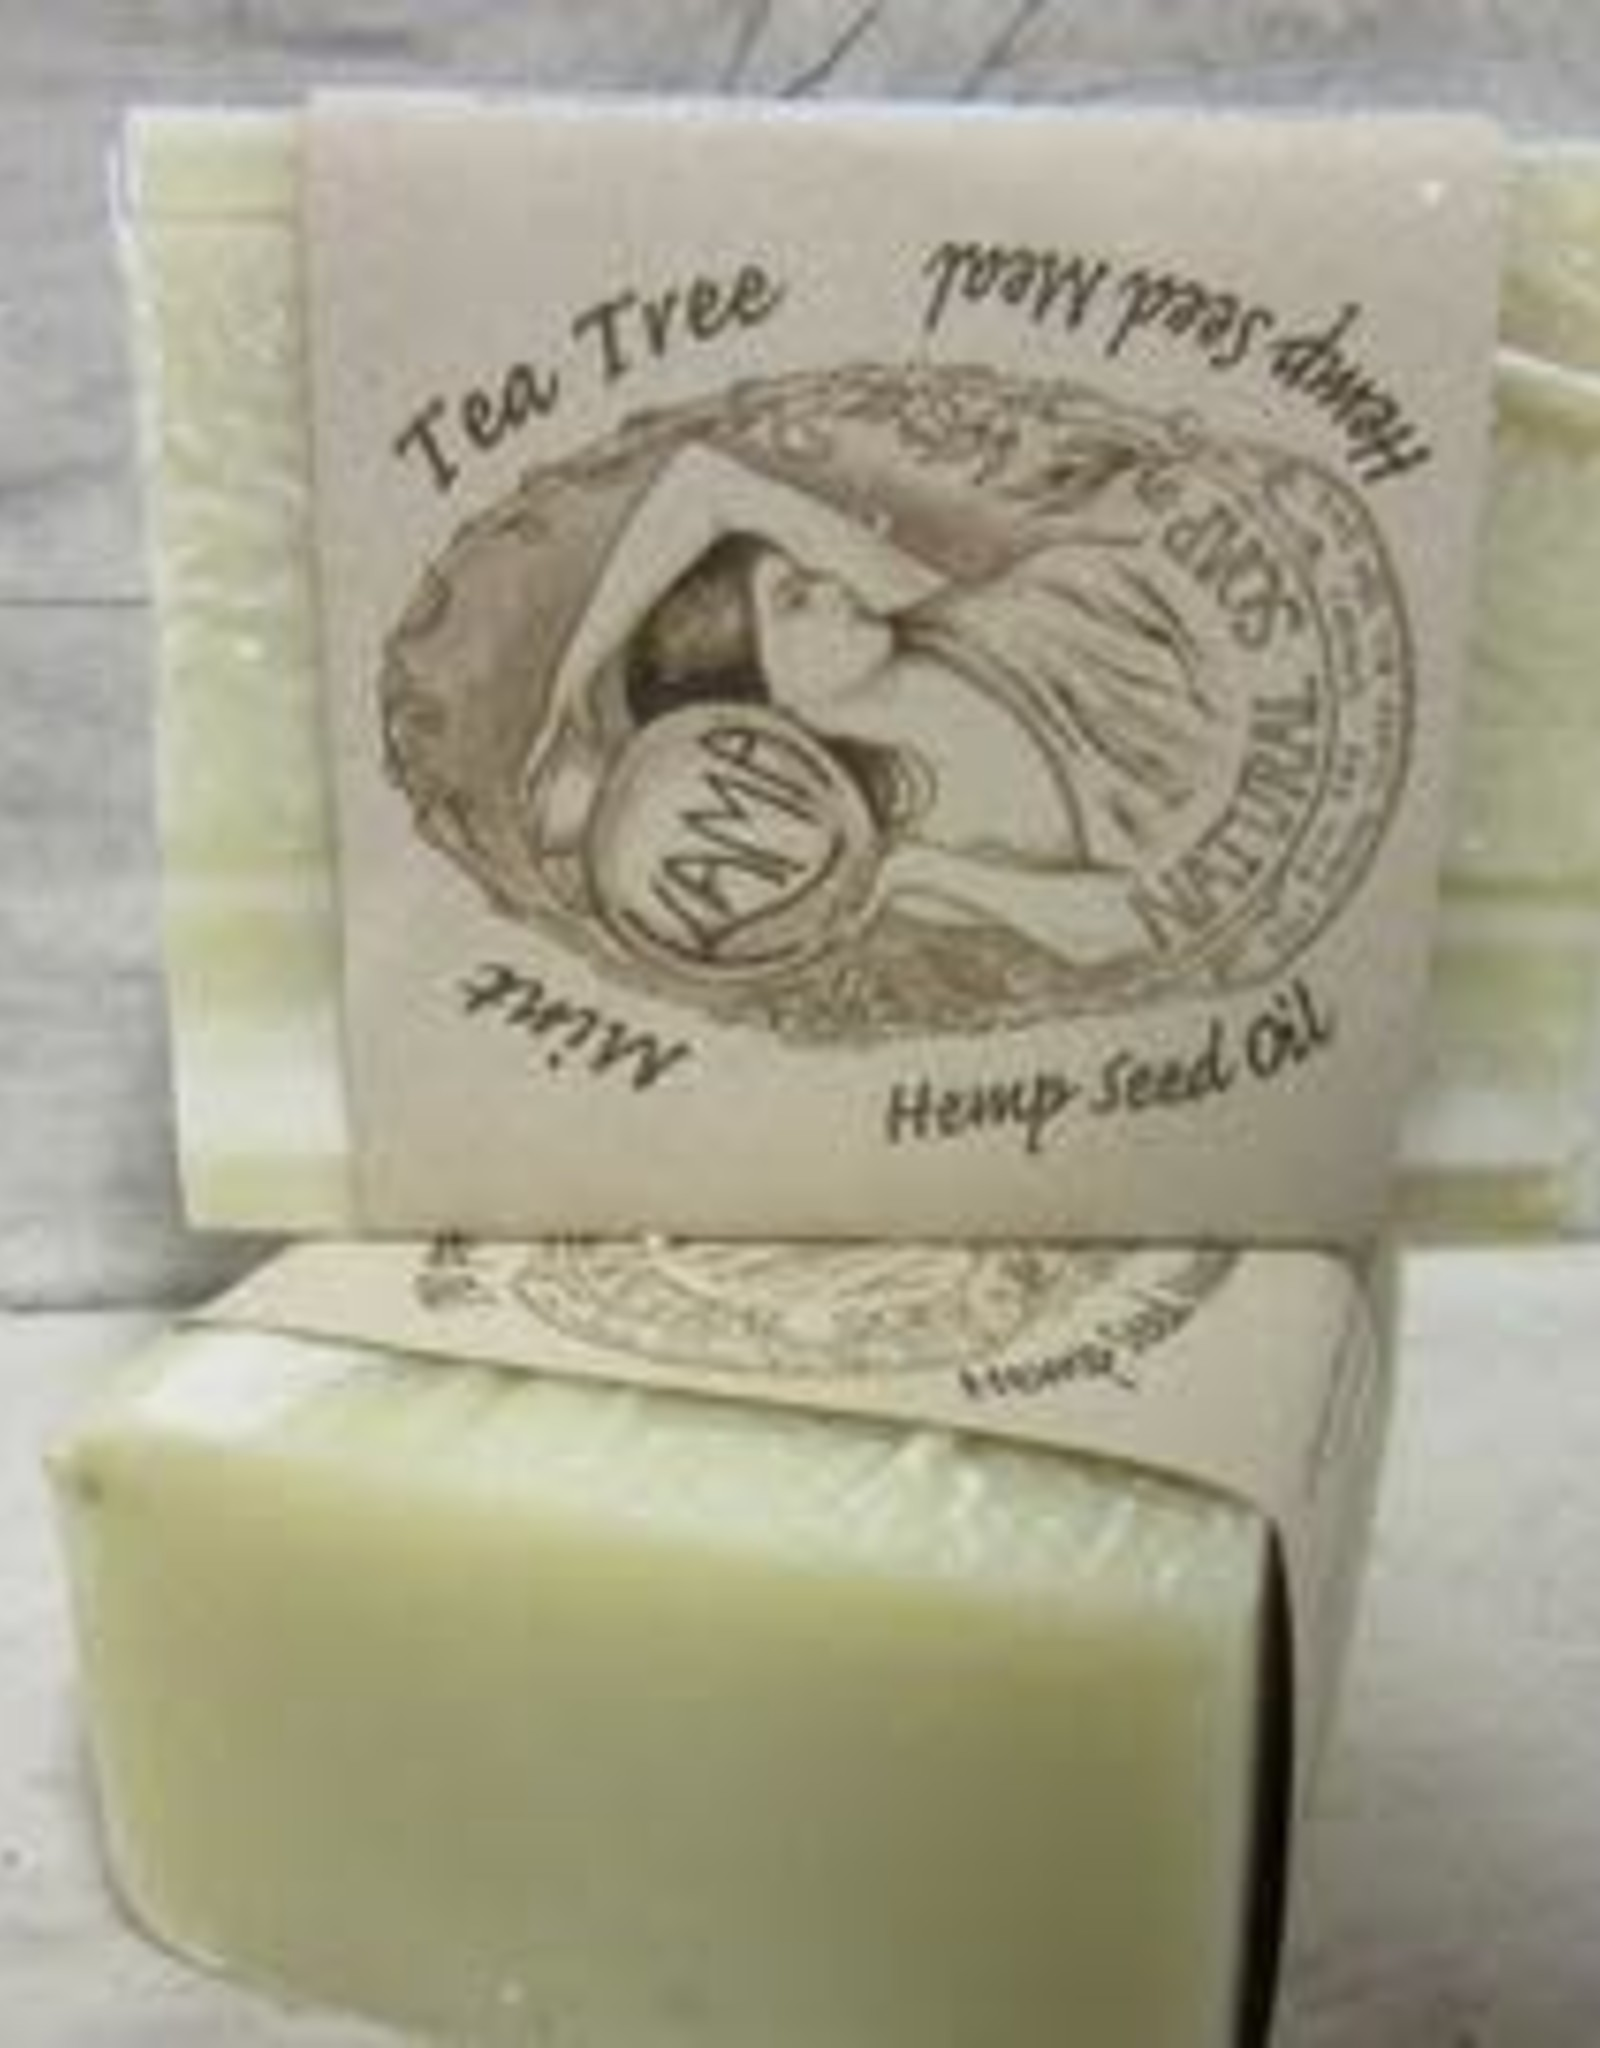 Kama Soap Kama Soap Mint Tea Tree